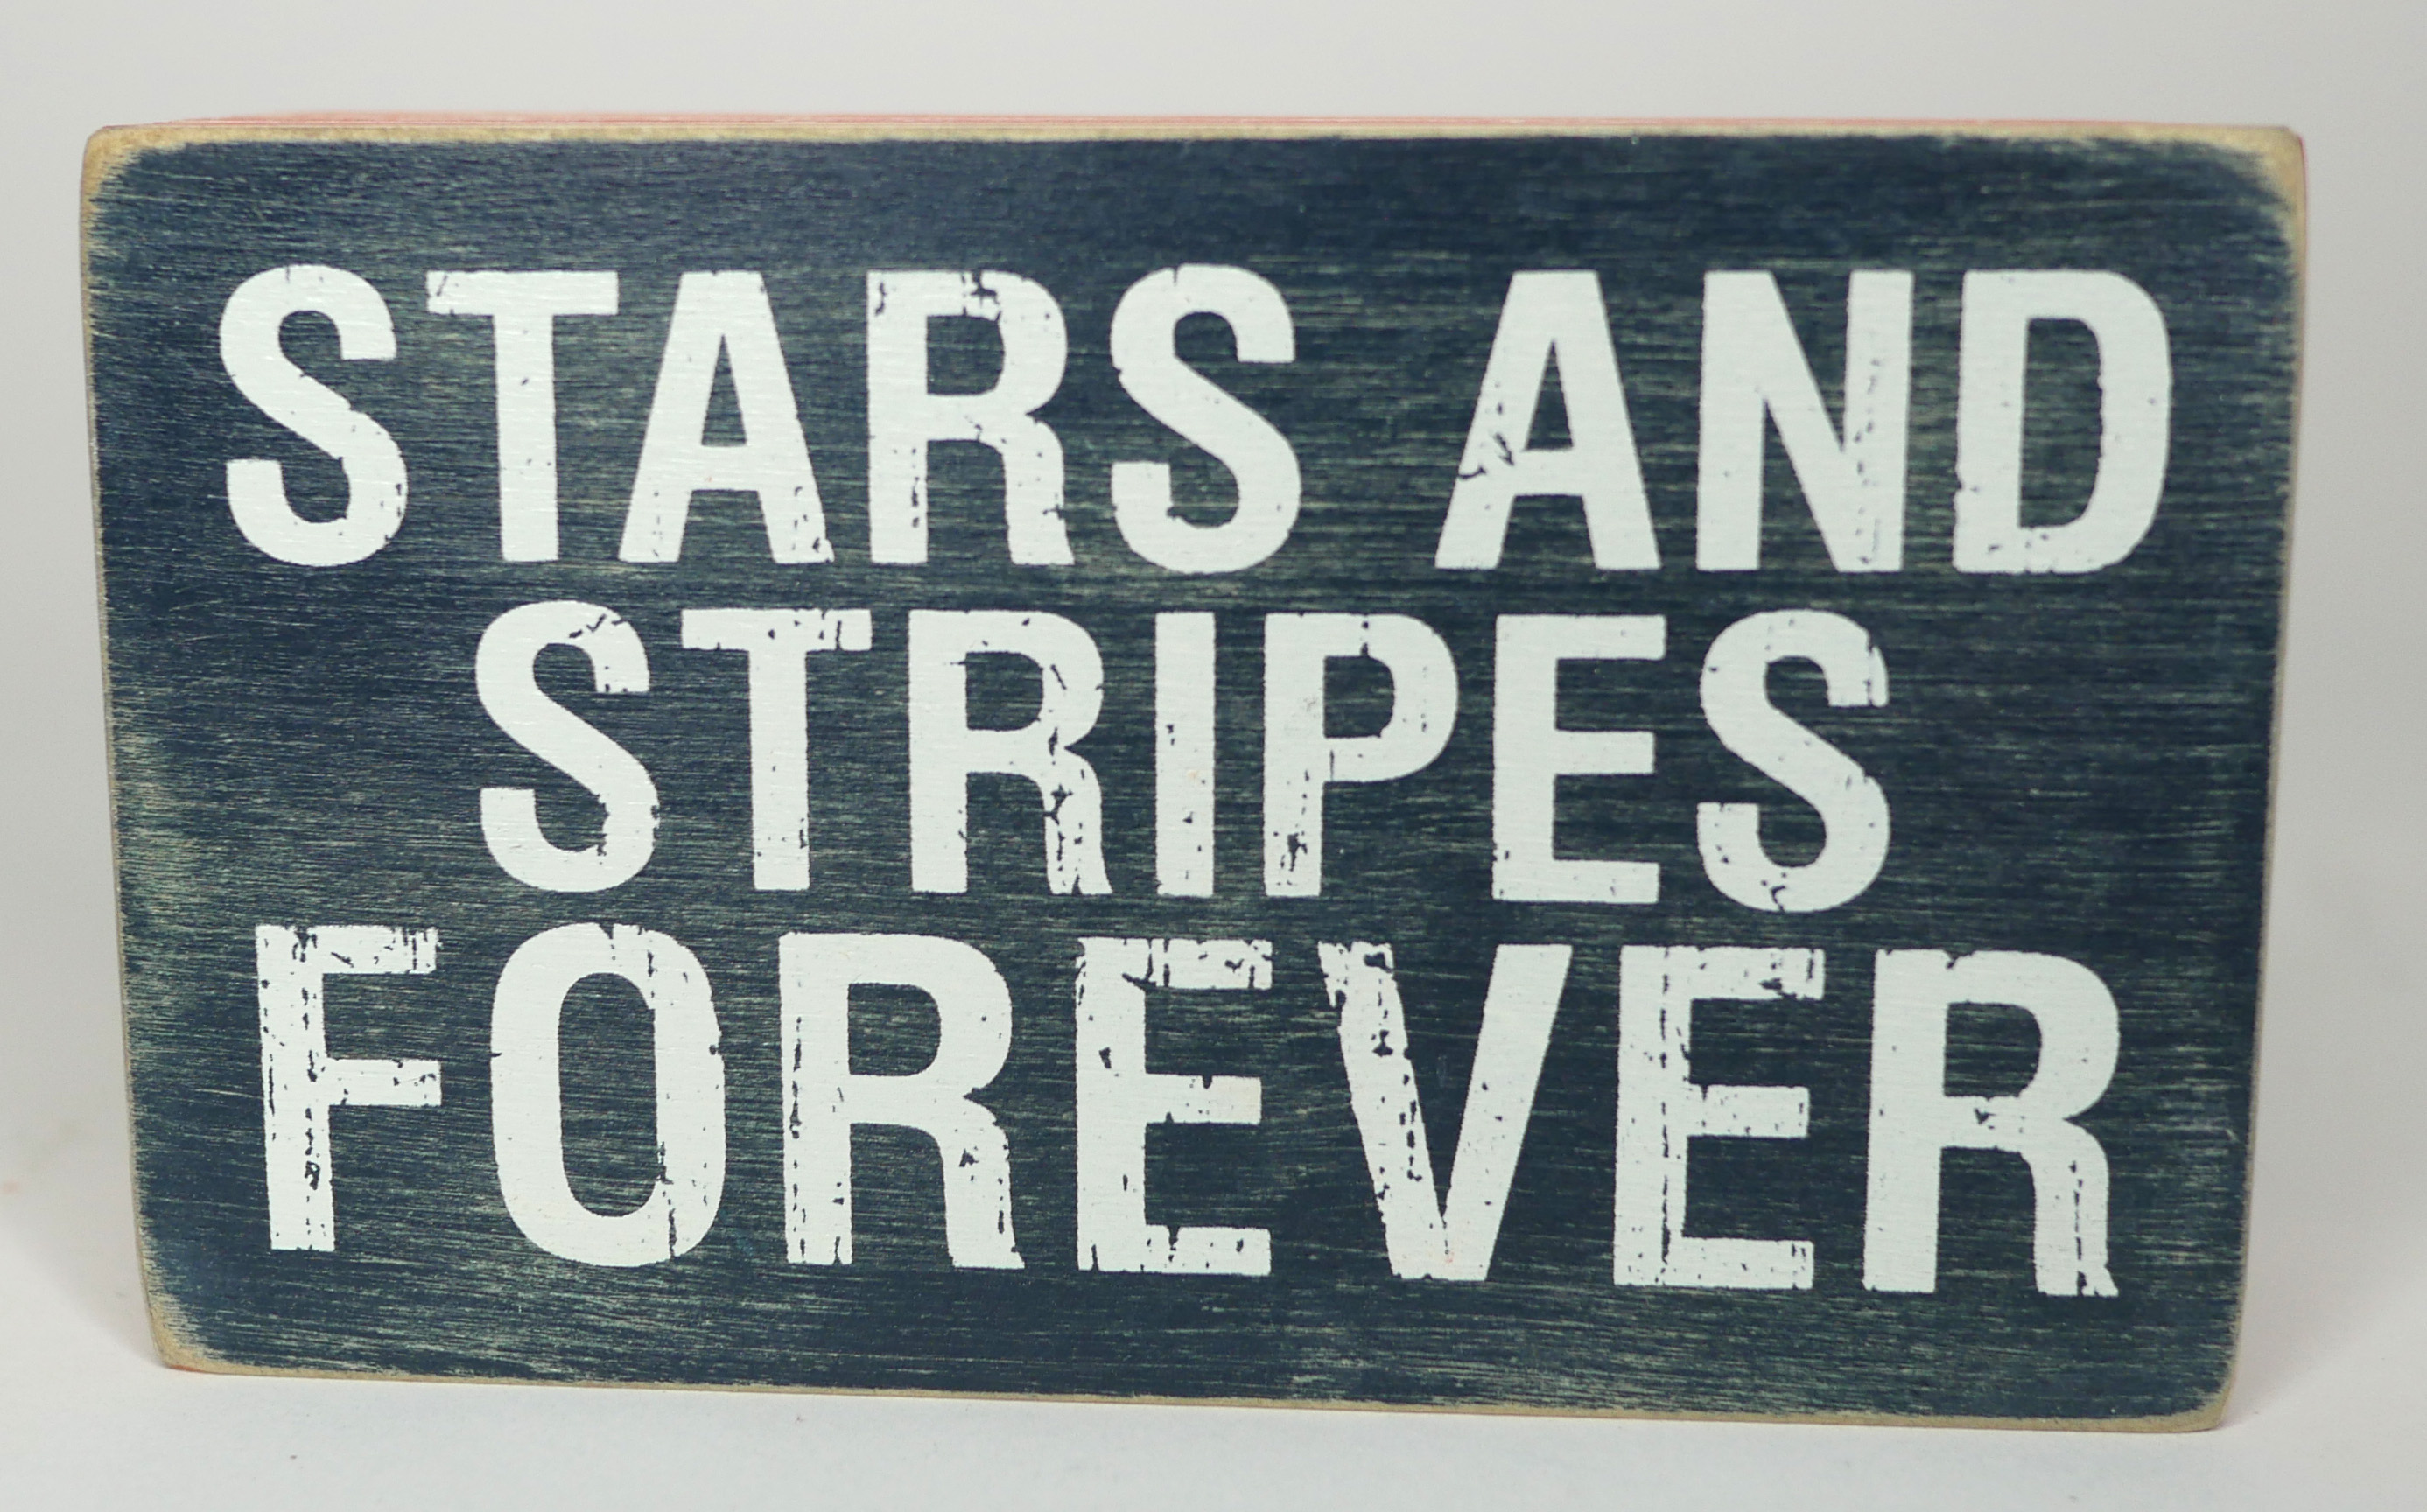 37+ Stars And Stripes Forever Image